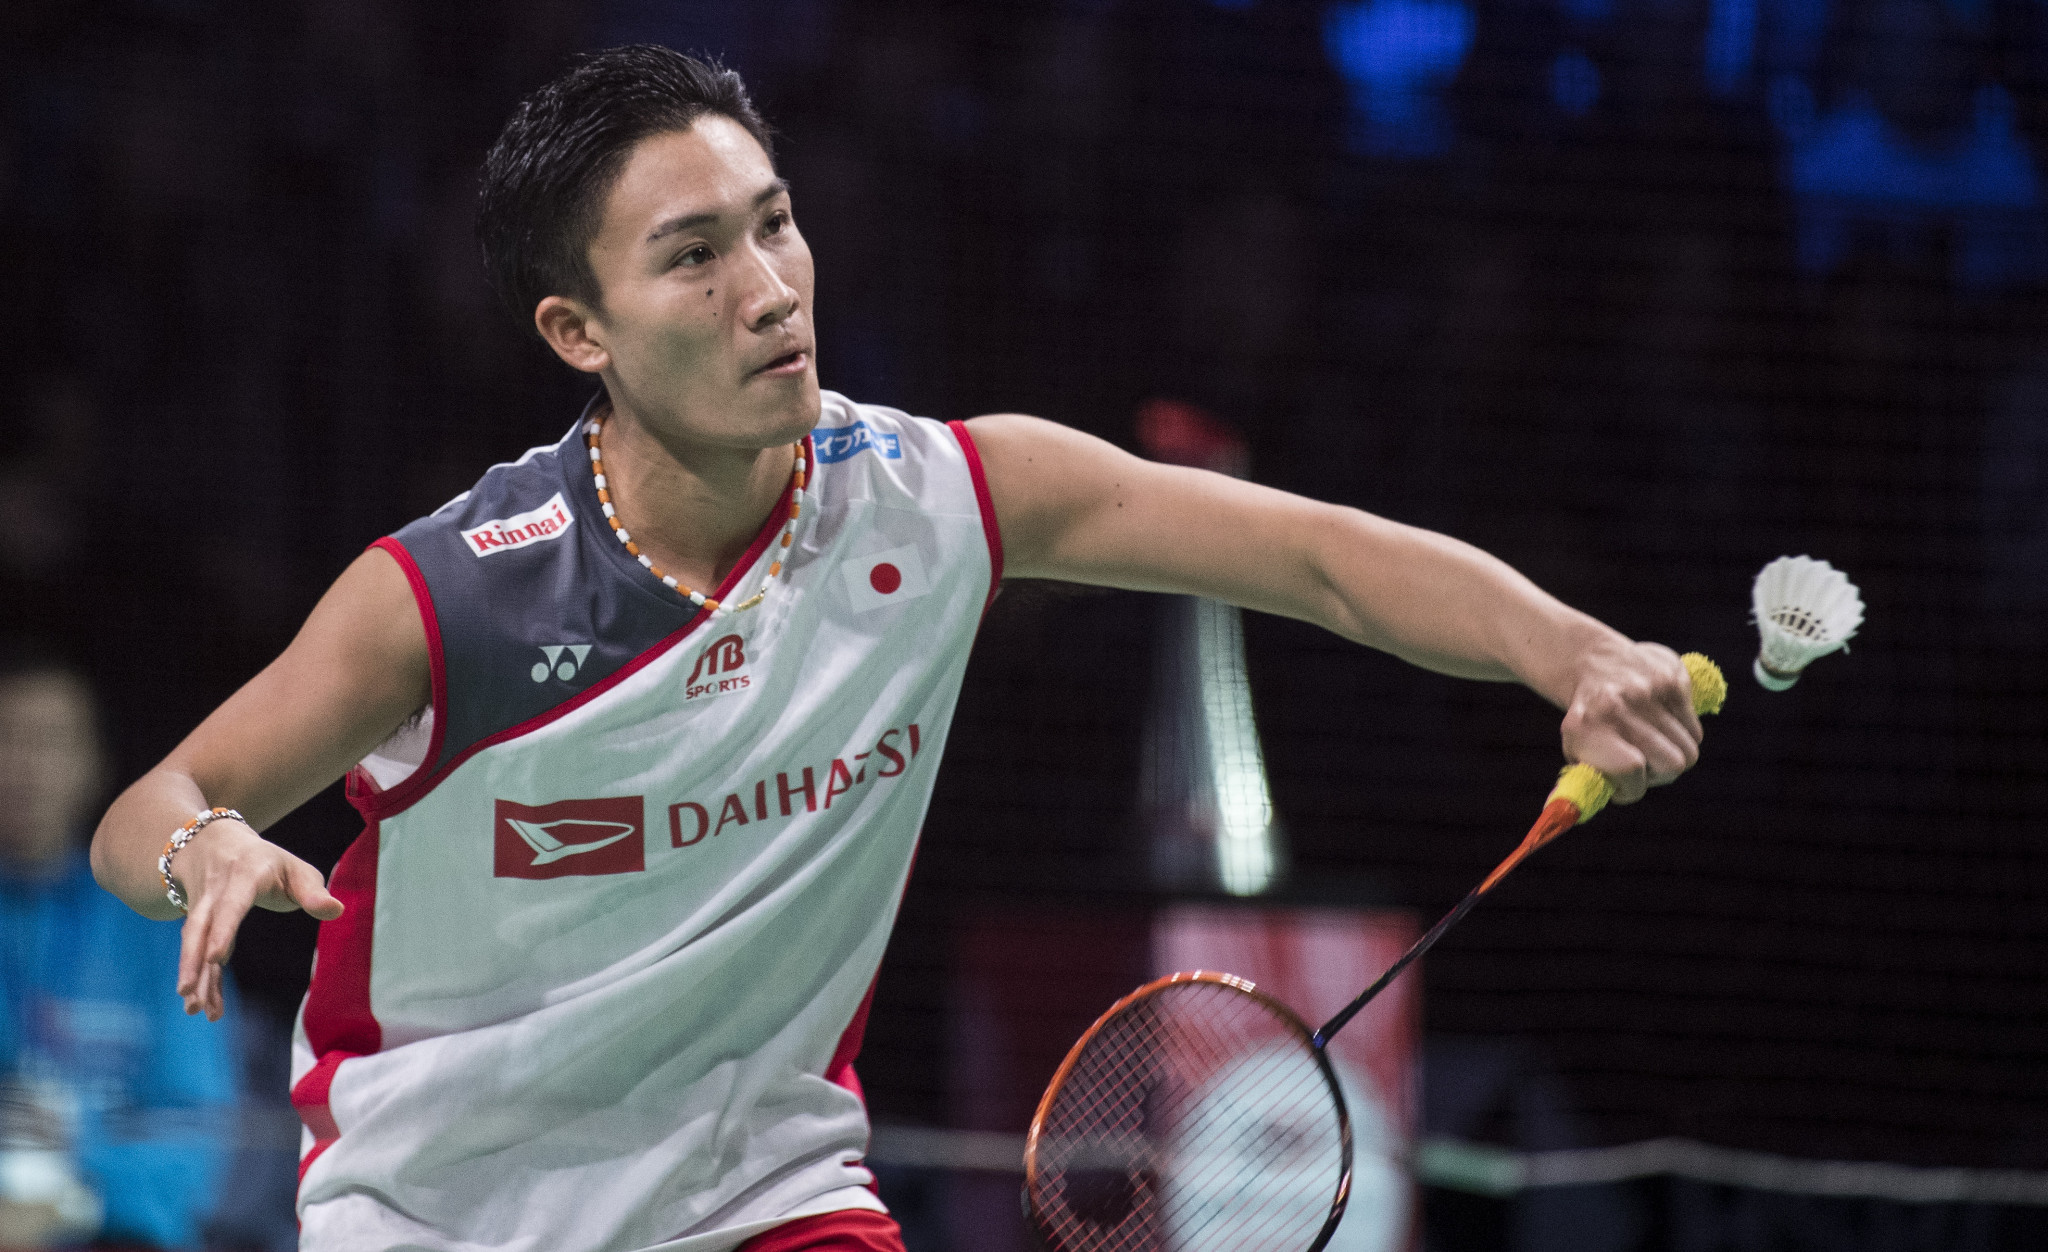 Kento Momota of Japan won the men's final of the BWF Denmark Open ©Getty Images